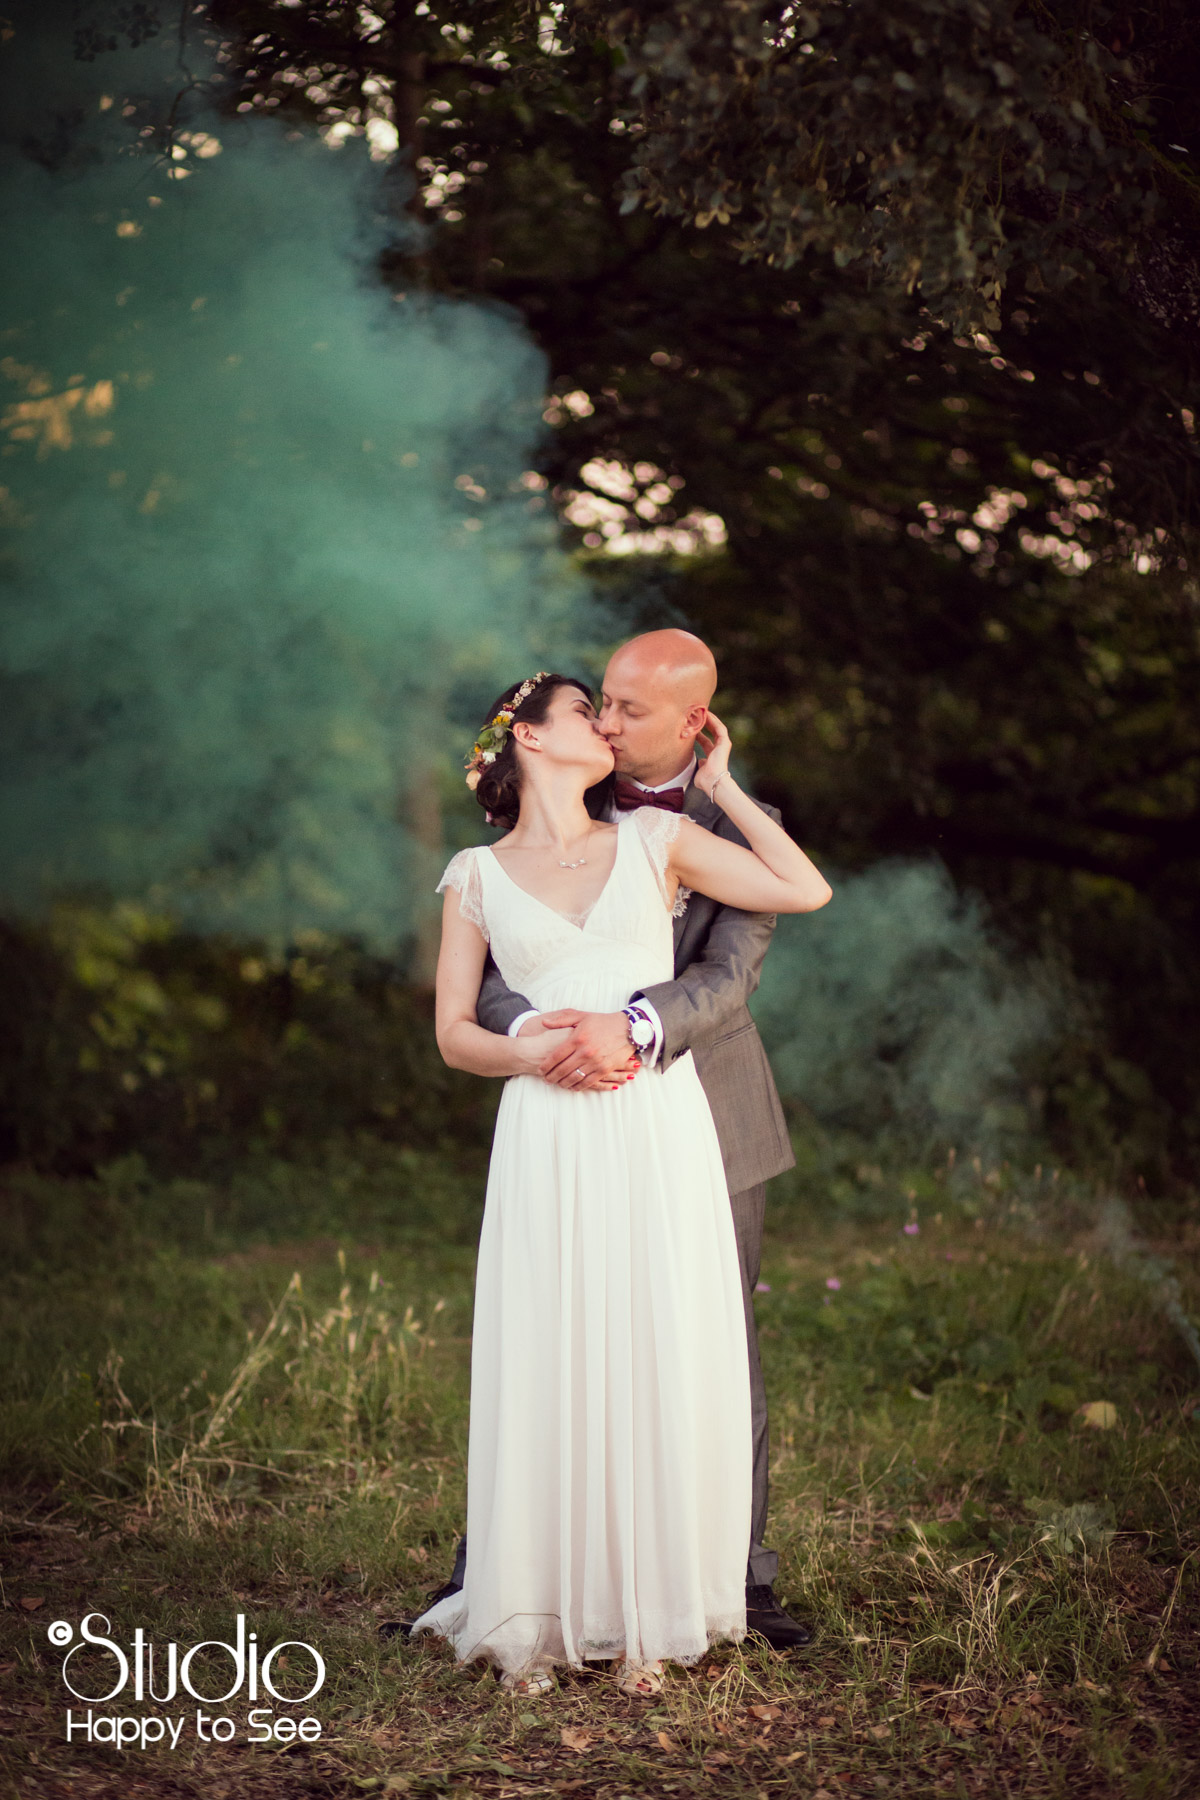 Mariage funky toulouse fumigenes